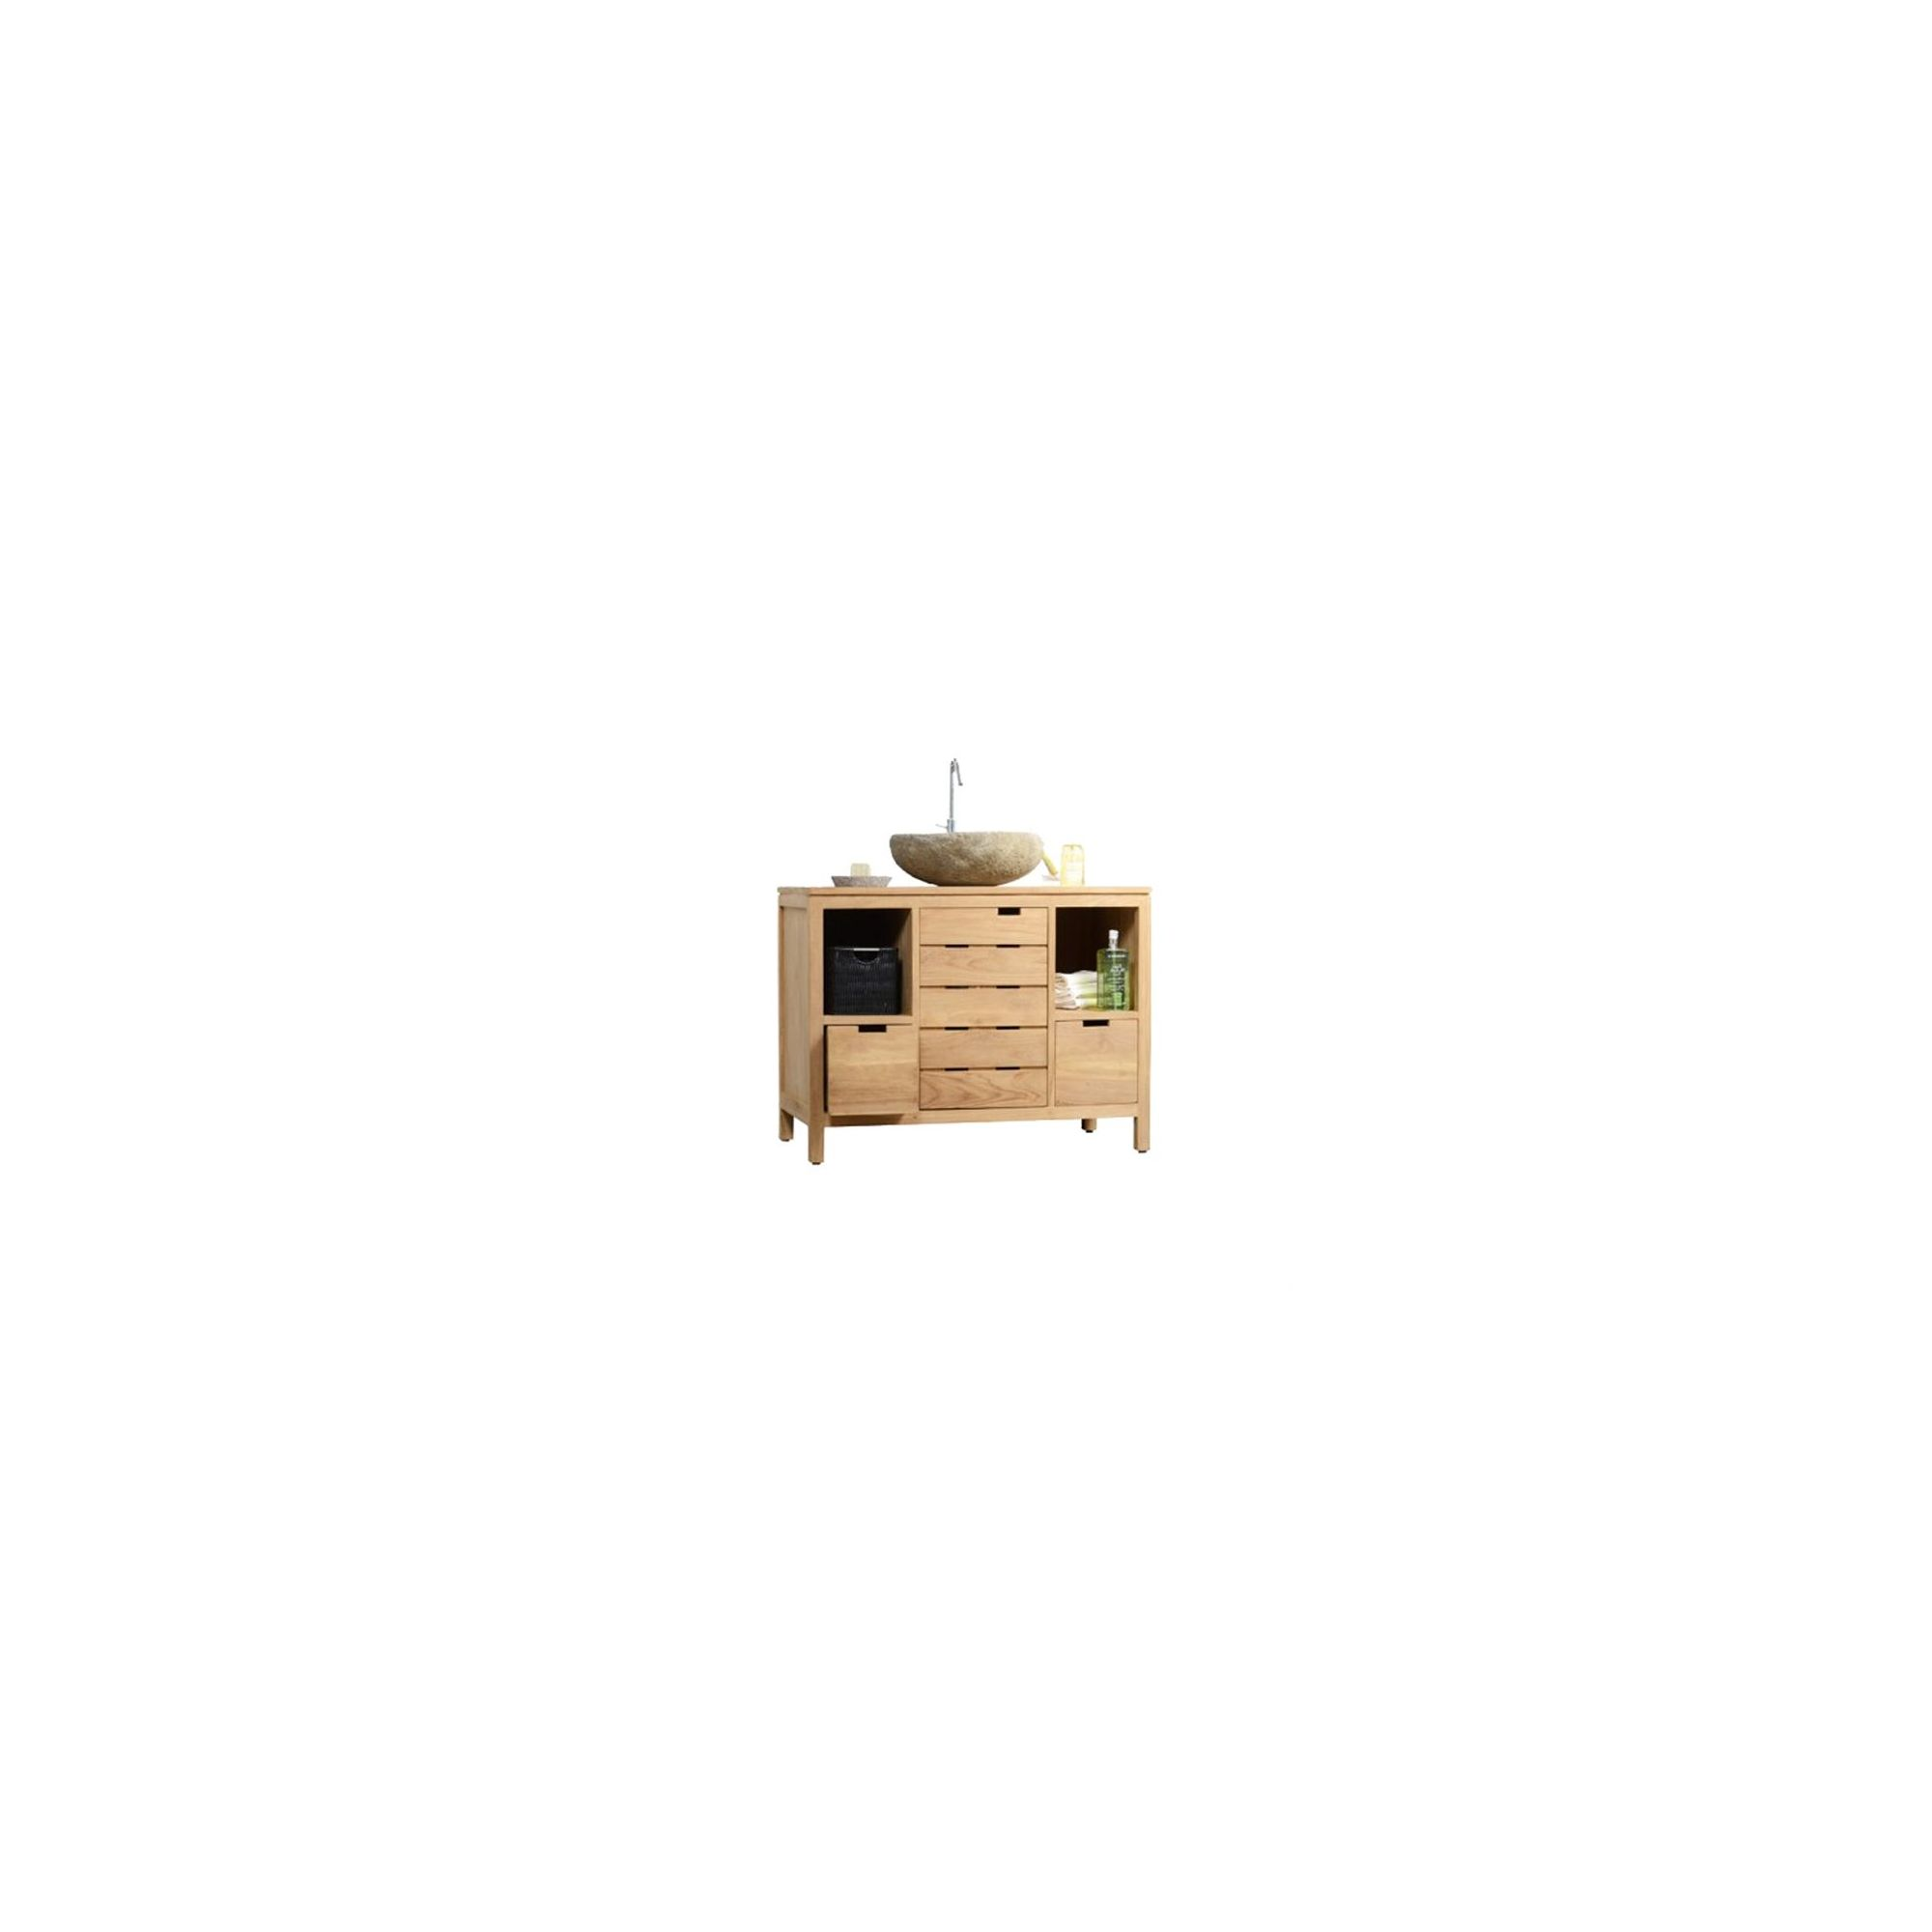 Tikamoon Serena Solo Teak Vanity Cabinet at Tesco Direct